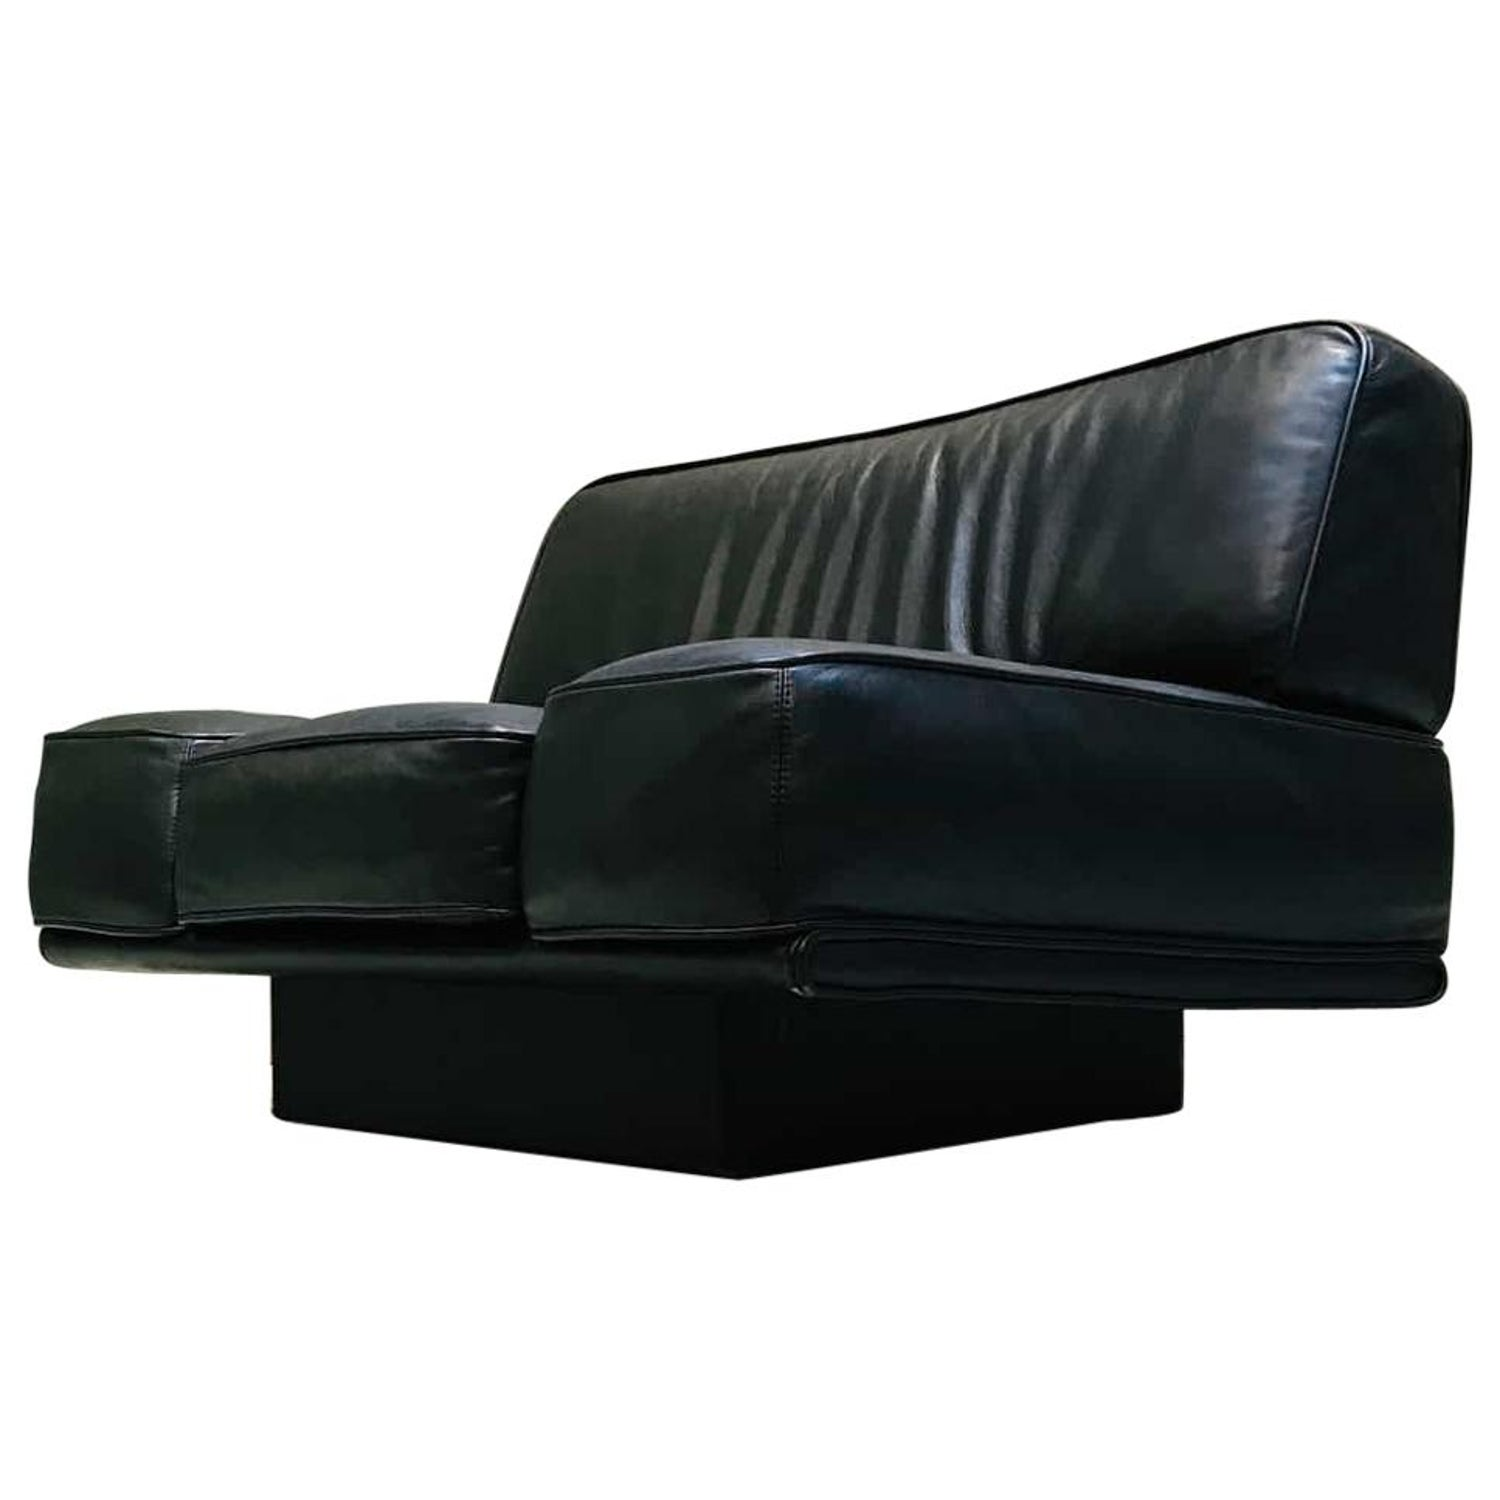 Admirable Italian Black Leather Lounge Chair By Arketipo Evergreenethics Interior Chair Design Evergreenethicsorg